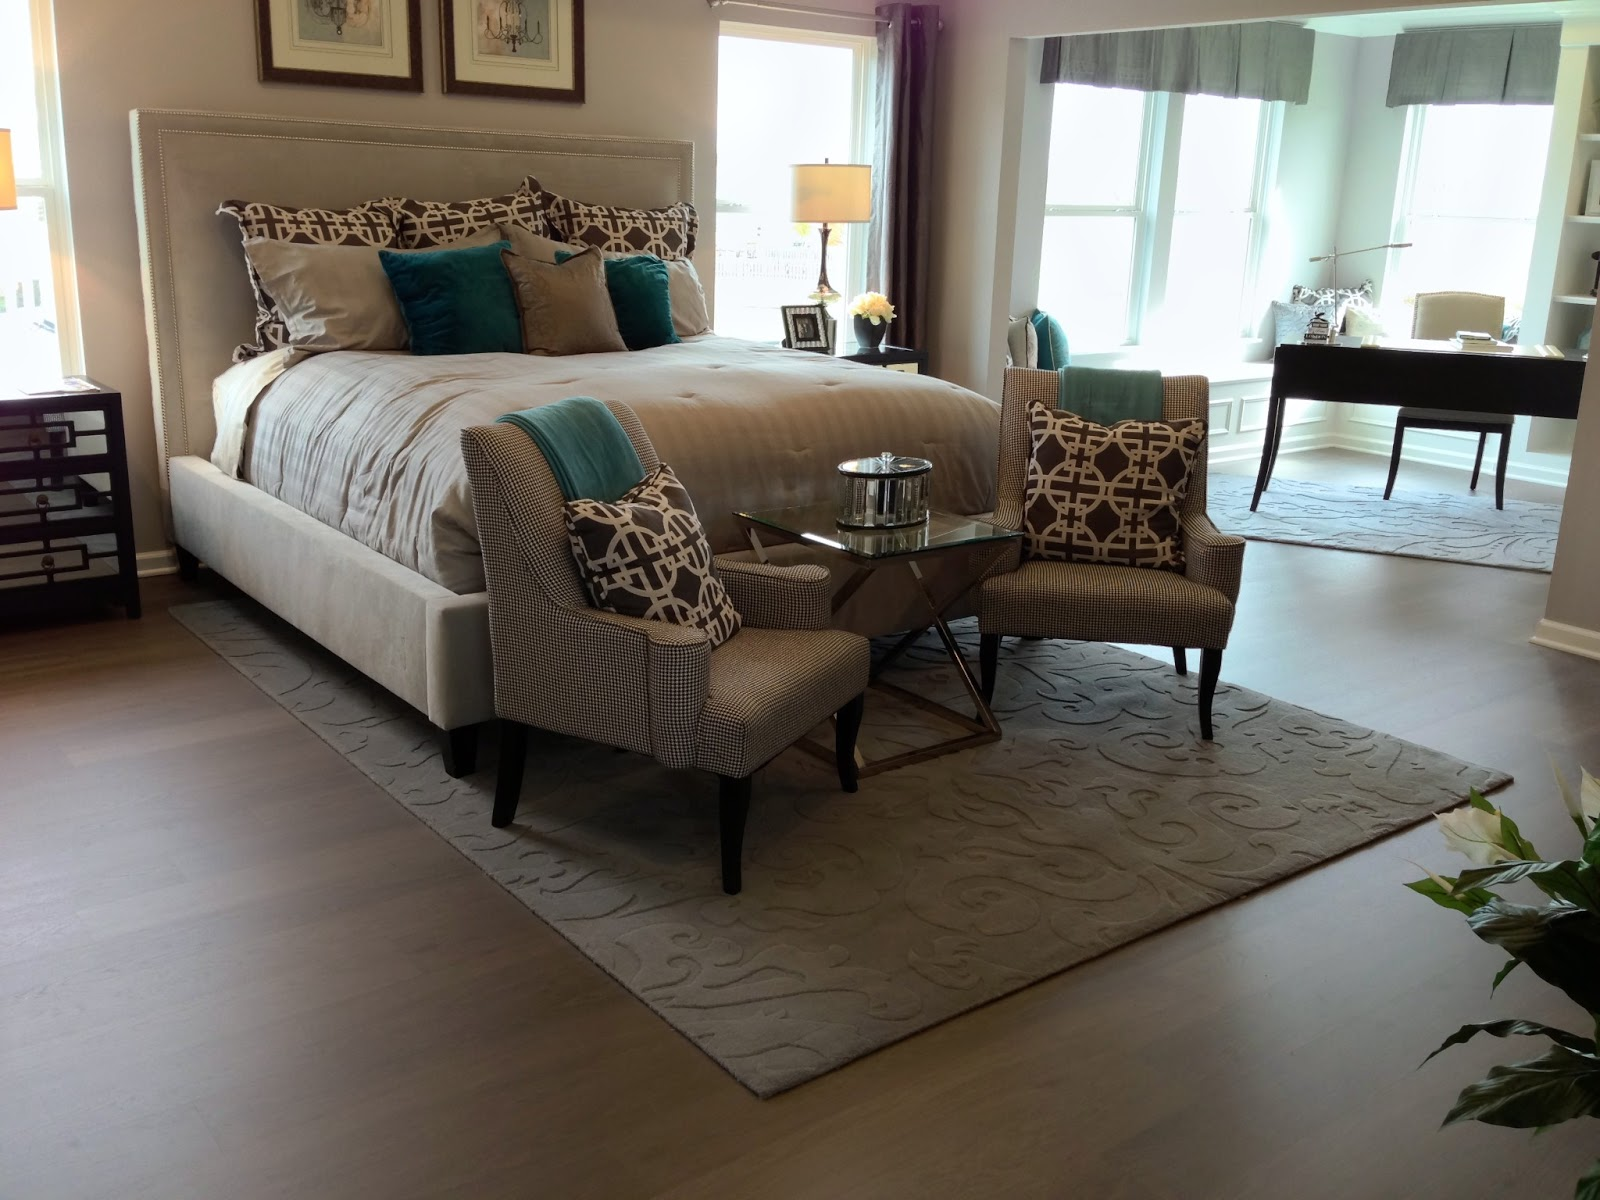 Bedroom flooring trends: ditch the carpet | Indianapolis ...